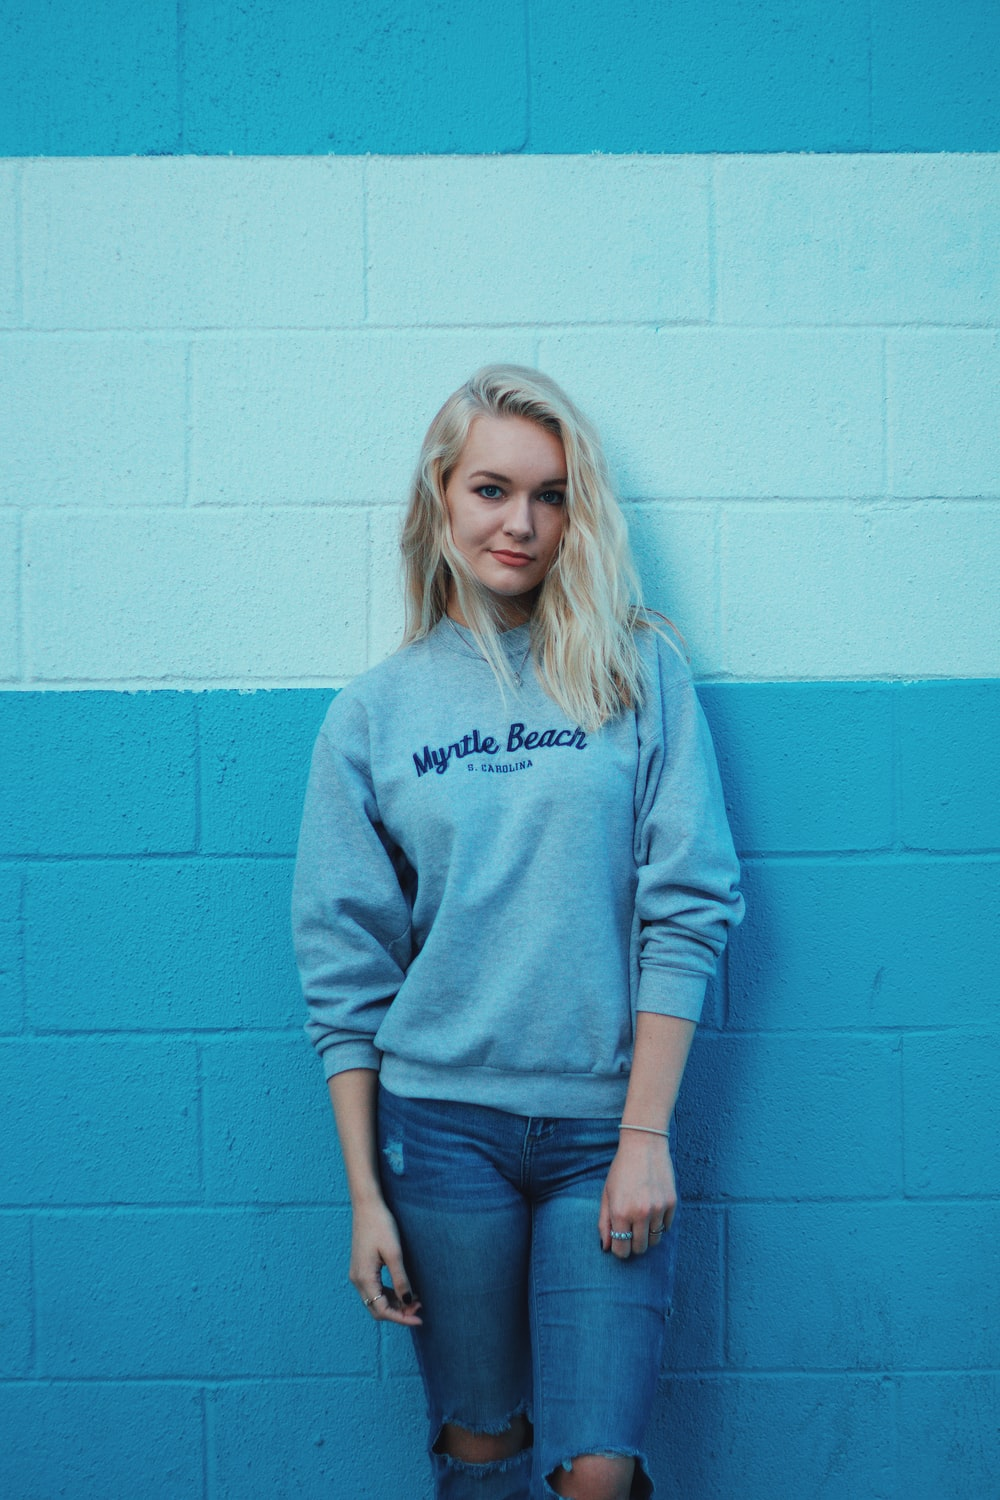 woman in teal sweater and blue jeans